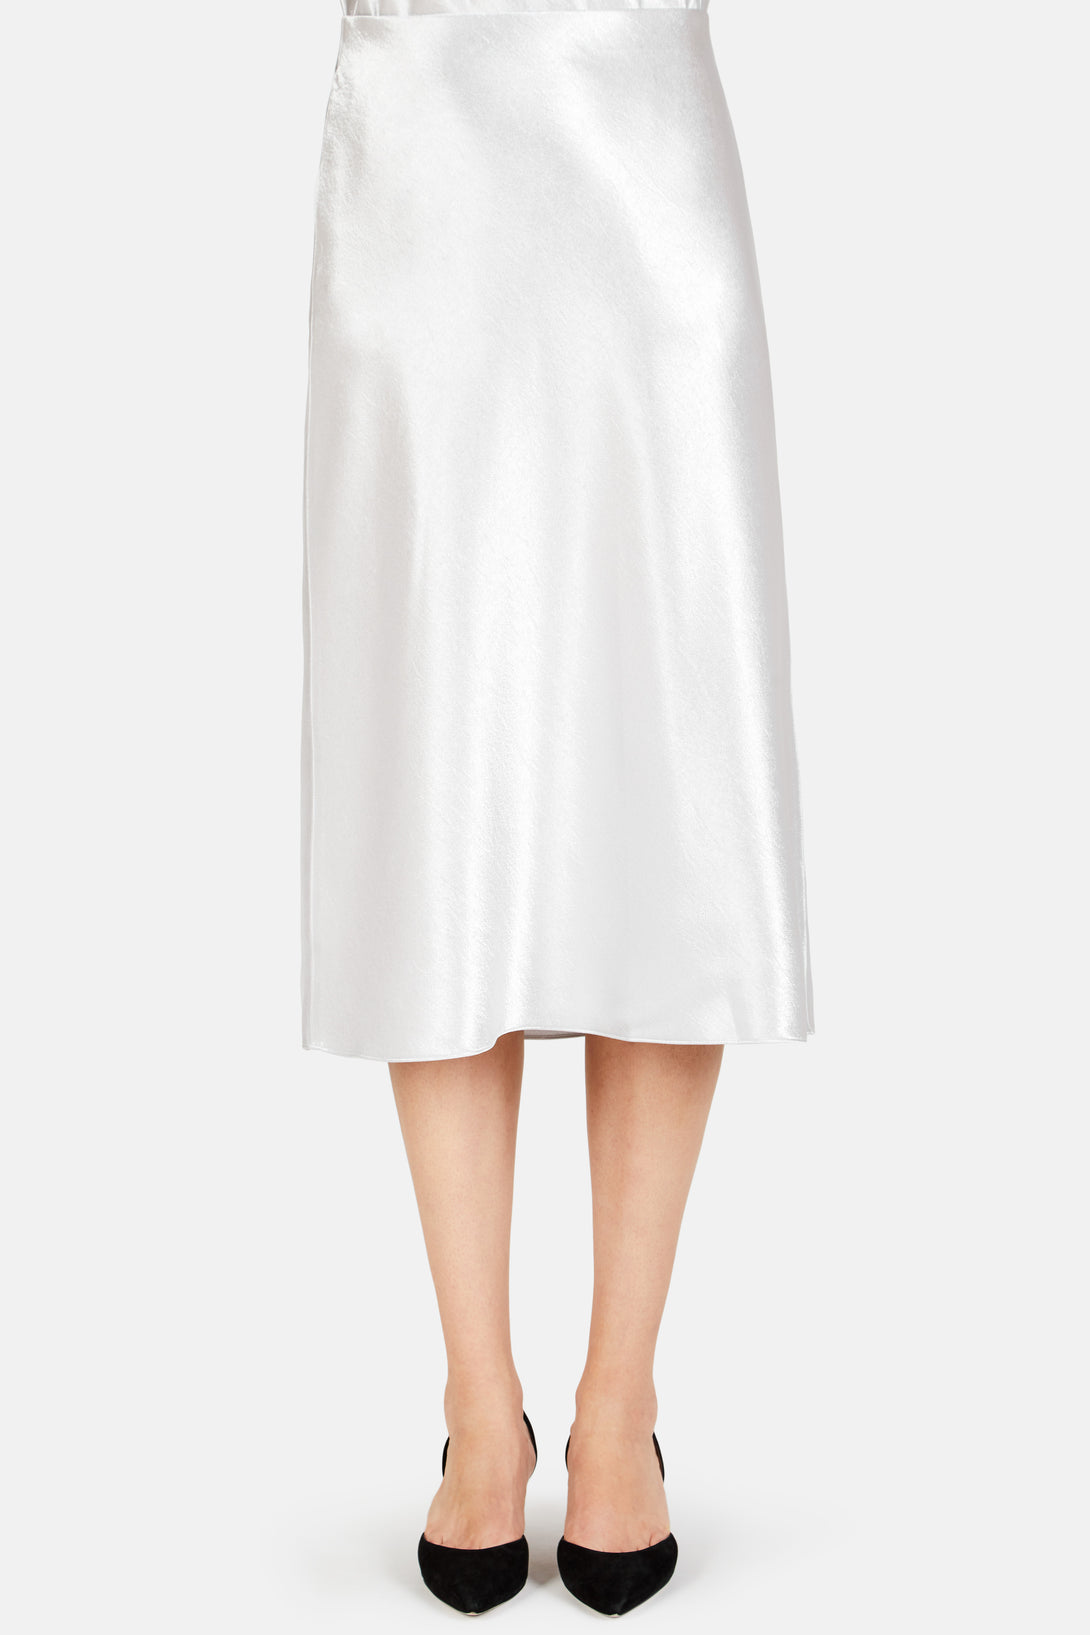 Slip Satin Skirt - Silver